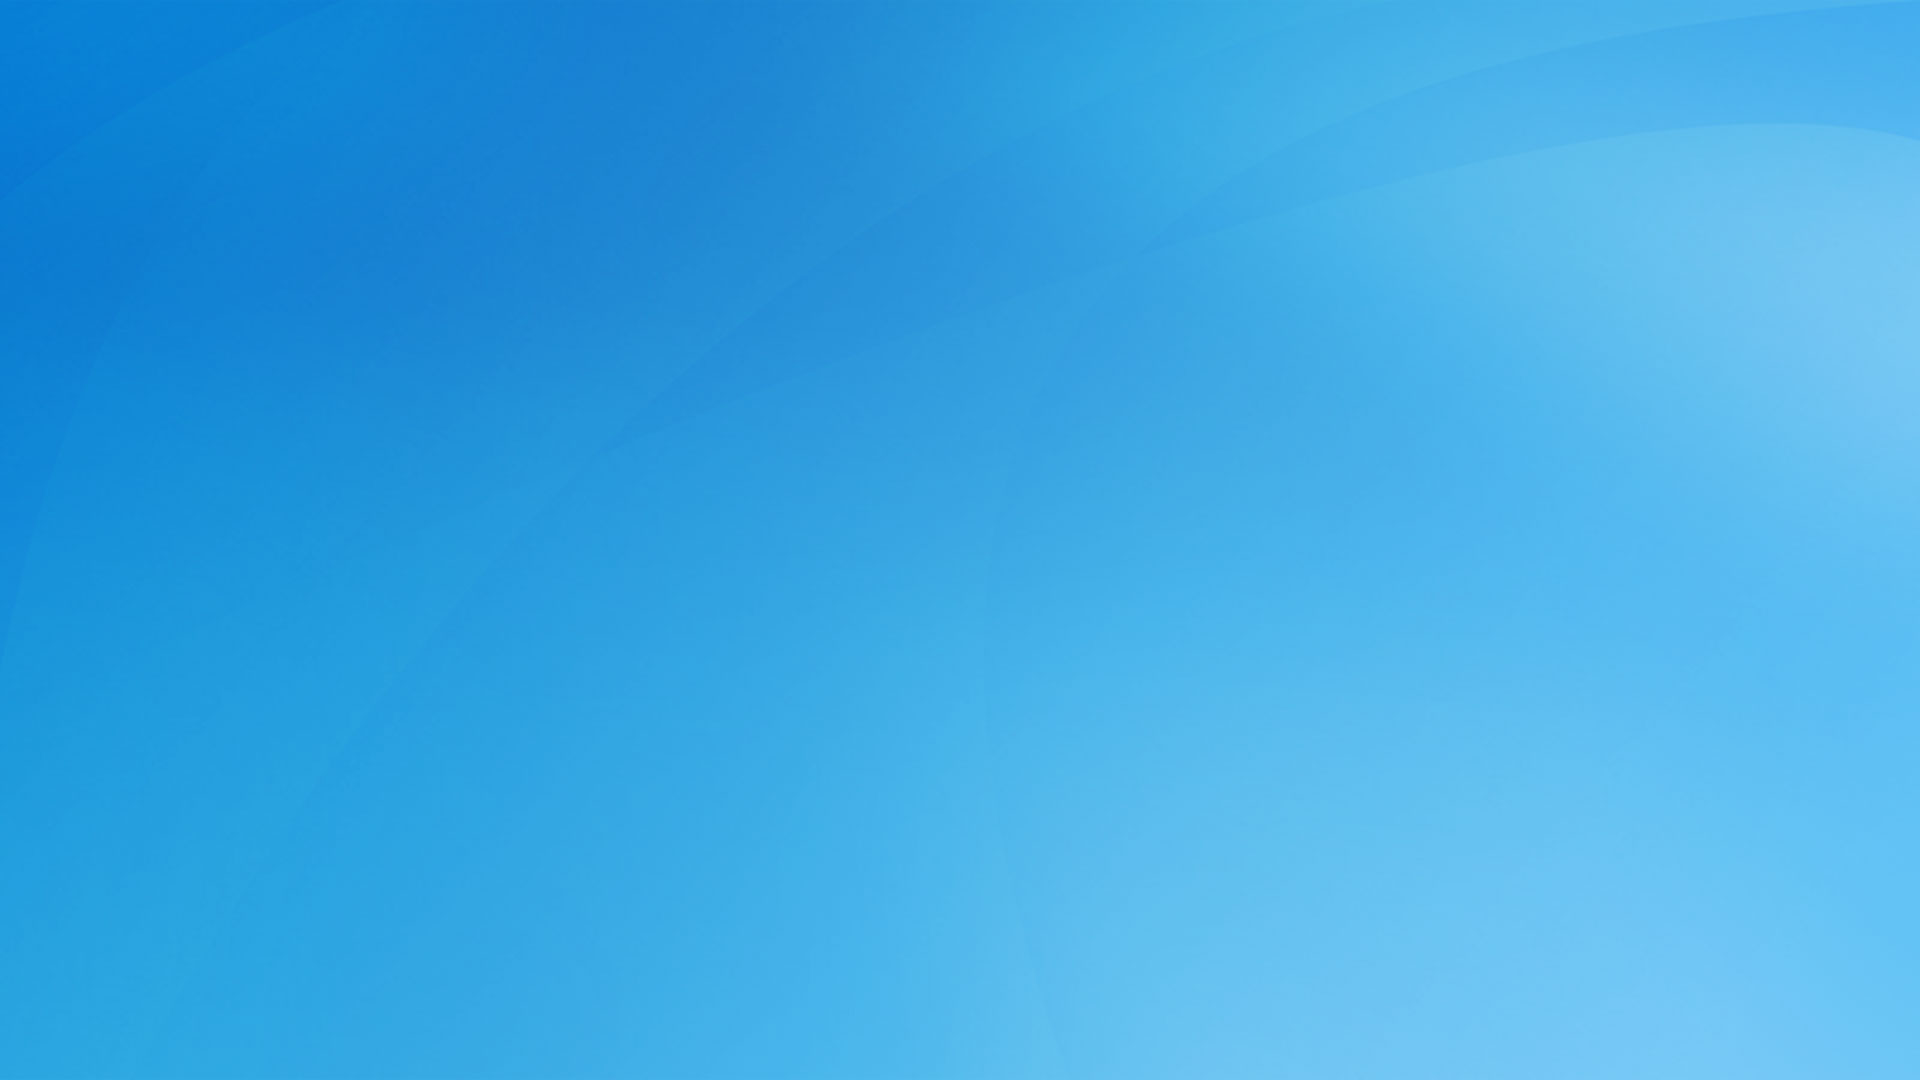 Plain Wallpapers HD light blue background